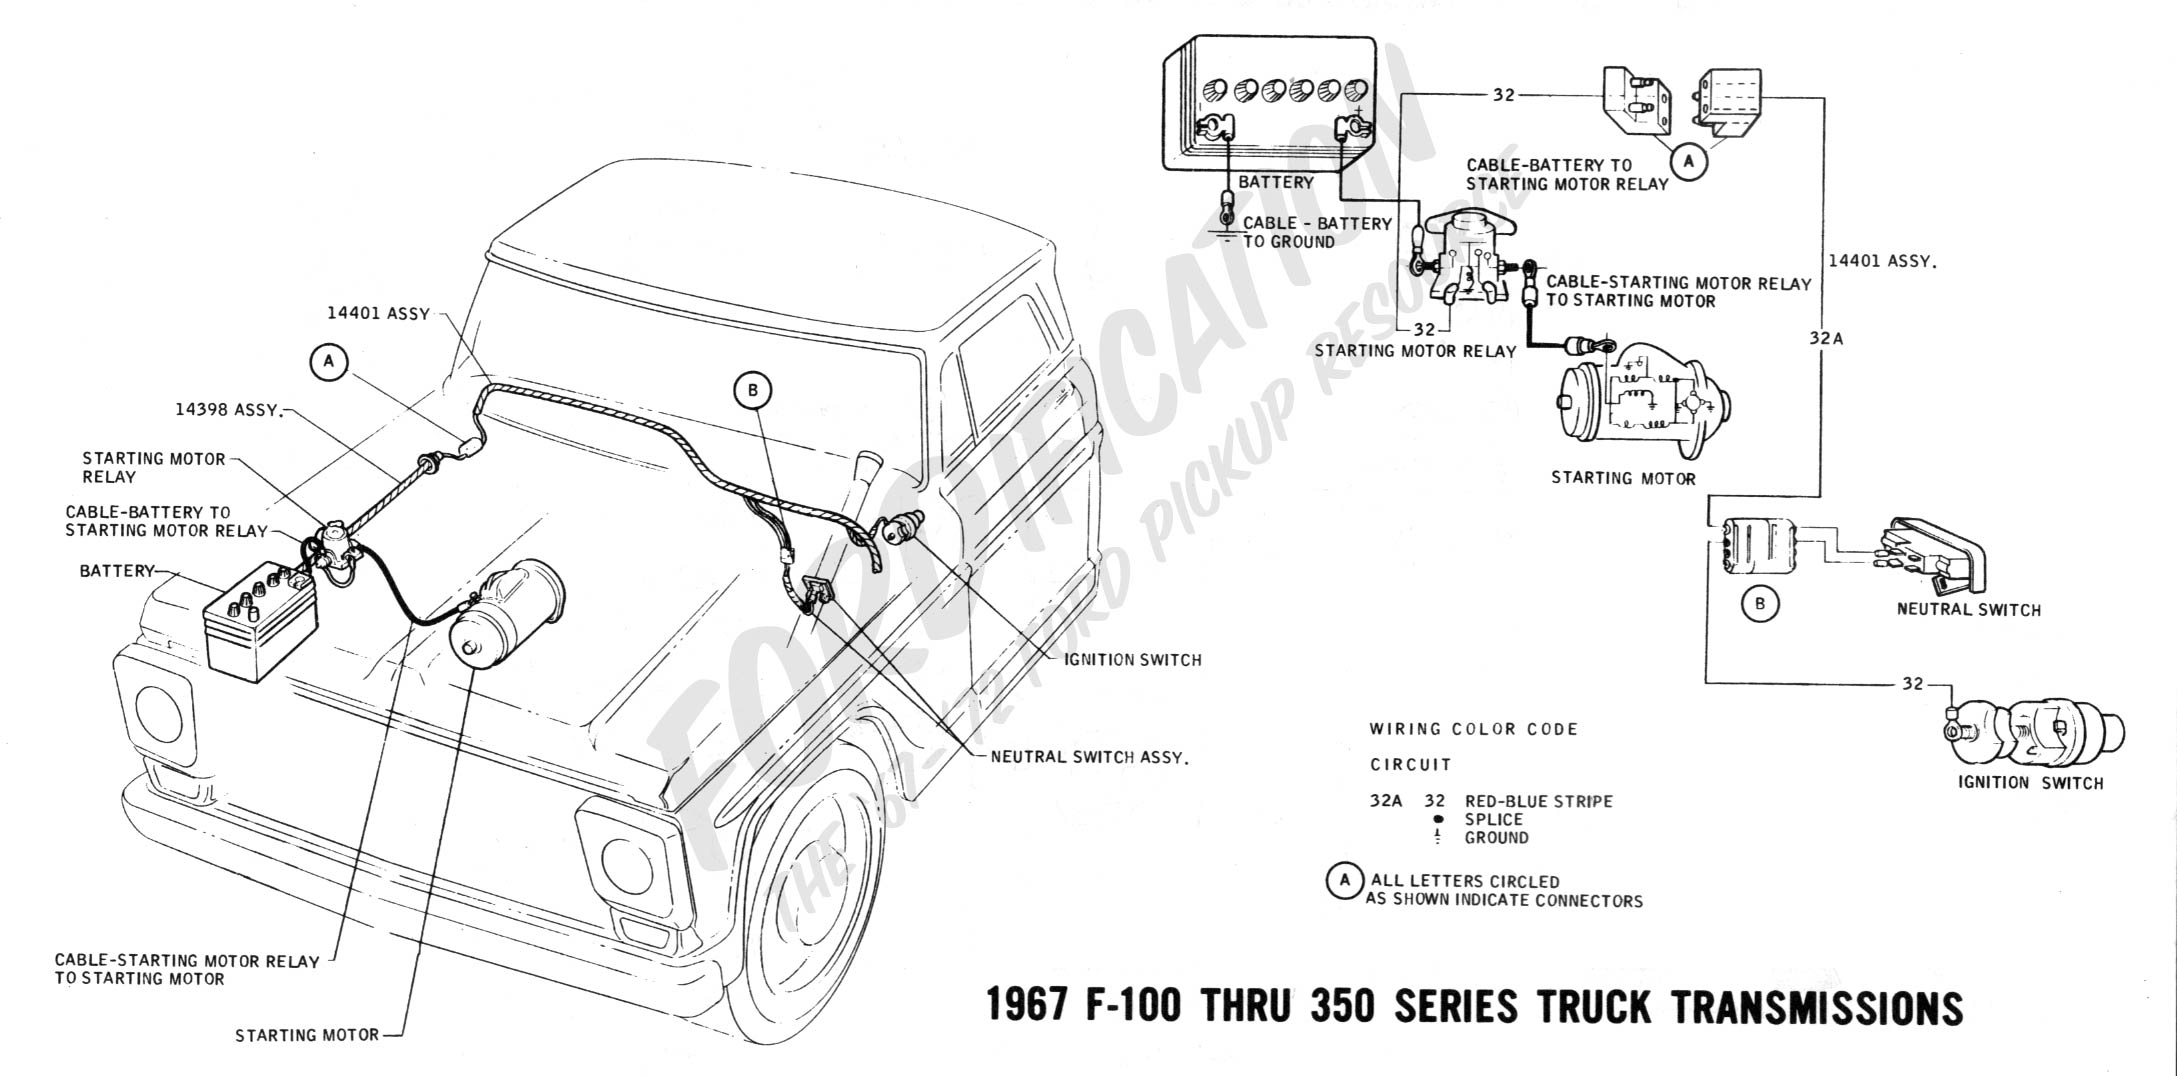 78 Ford Ignition Wiring Diagram Library 1978 Dodge D100 Truck Technical Drawings And Schematics Section H F150